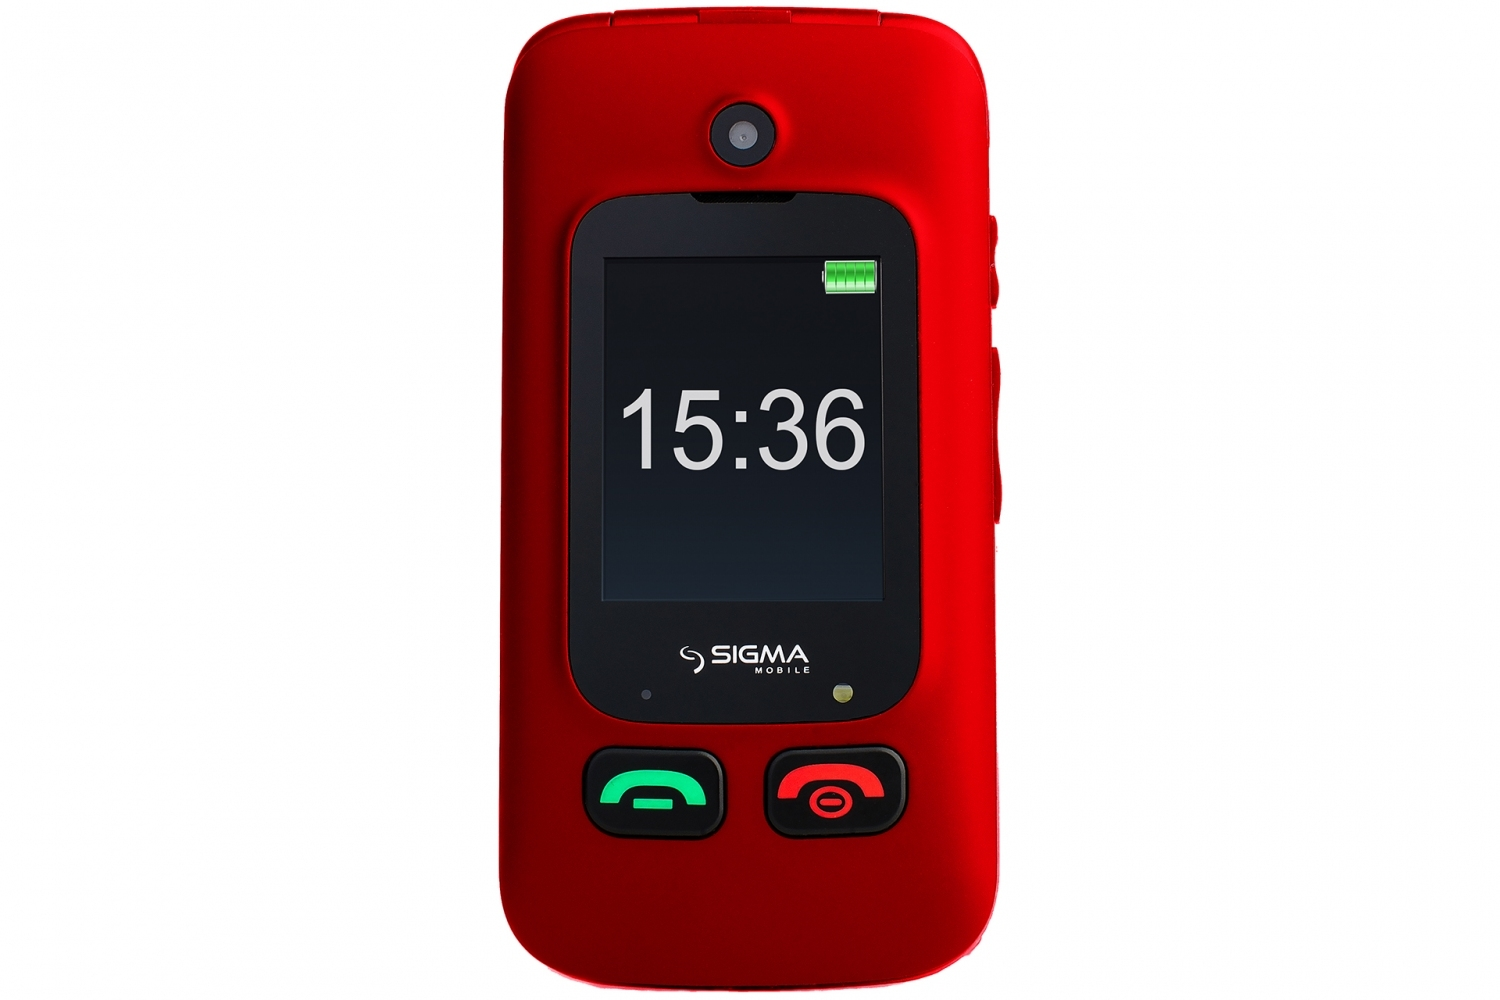 sigma-mobile-comfort-50-shell-duo-red-go-15215.jpg